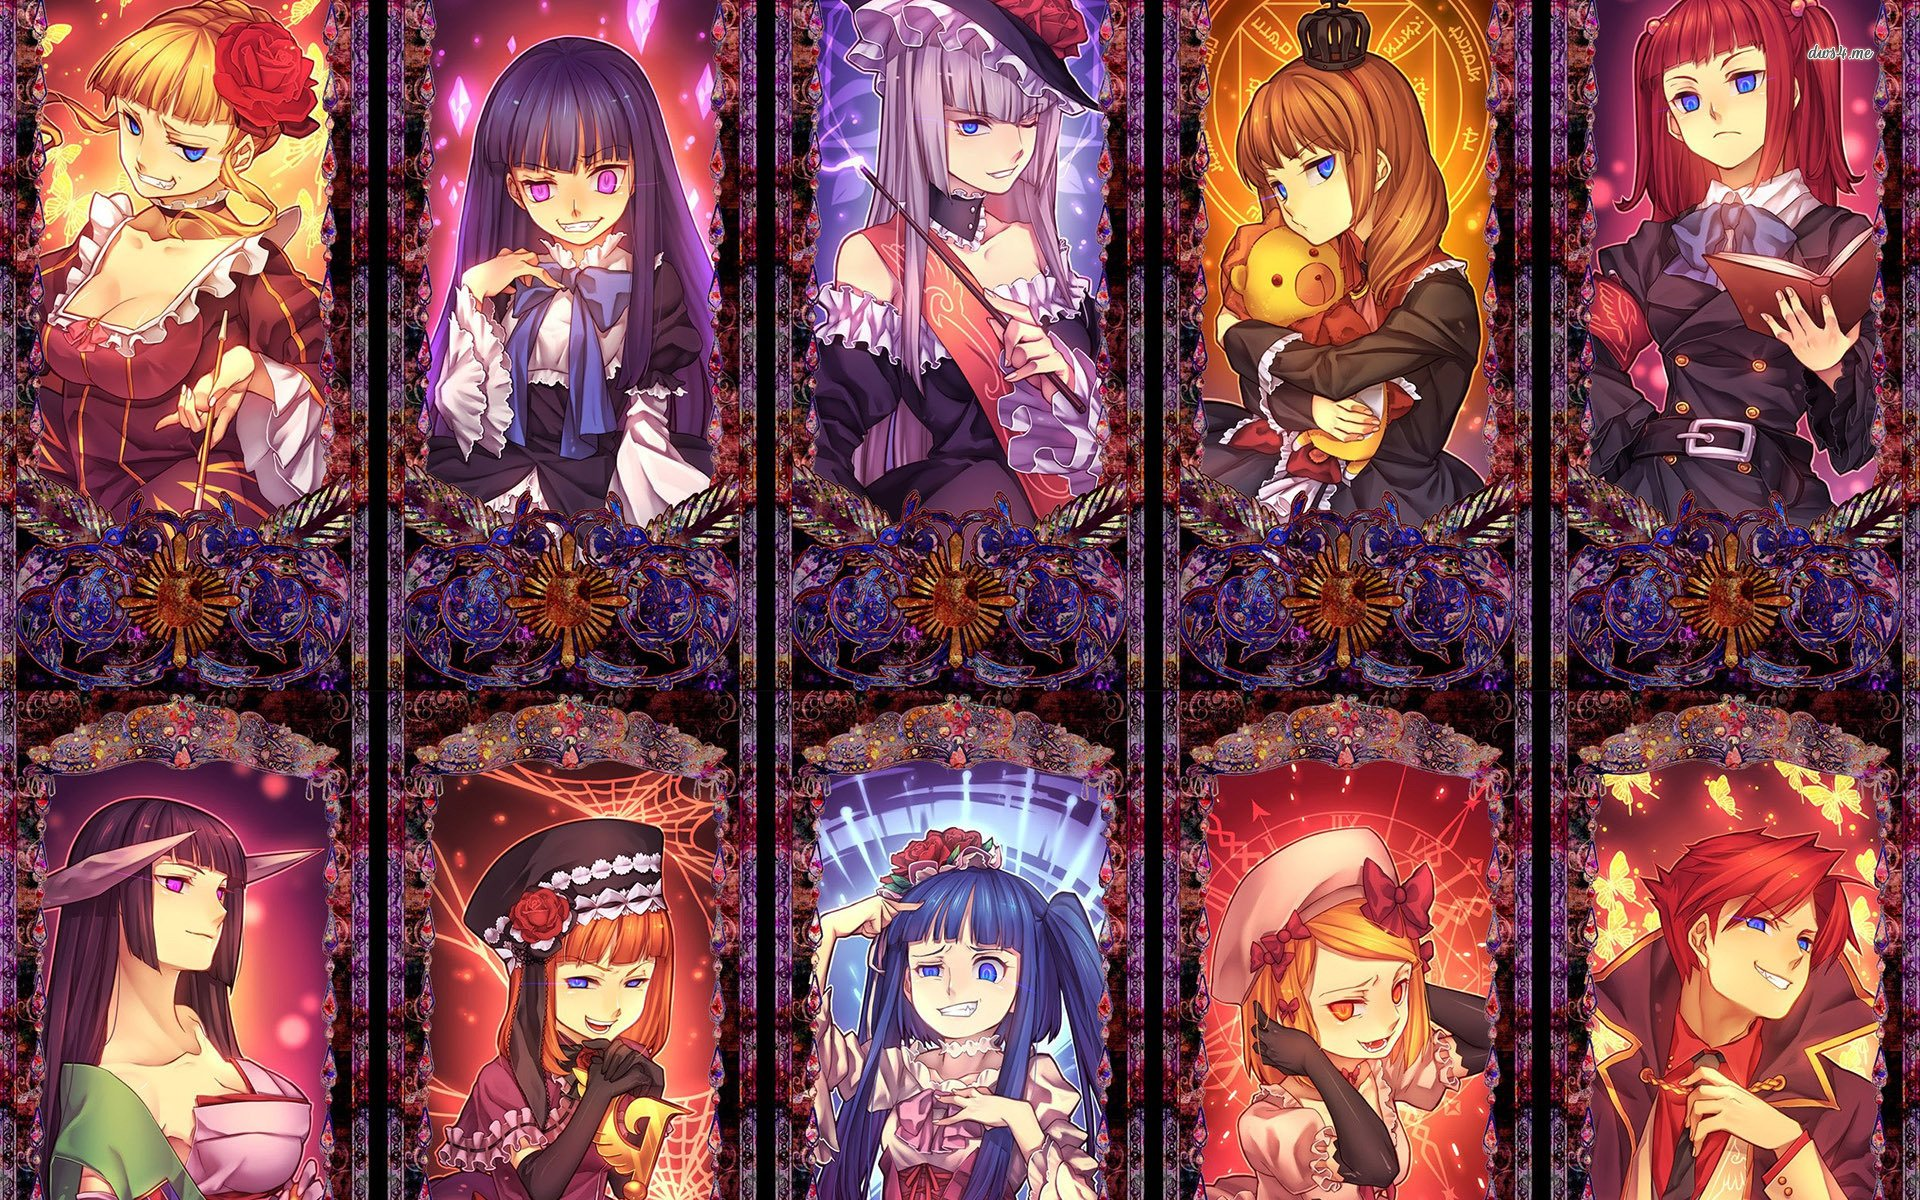 Umineko: When They Cry Pics, Anime Collection